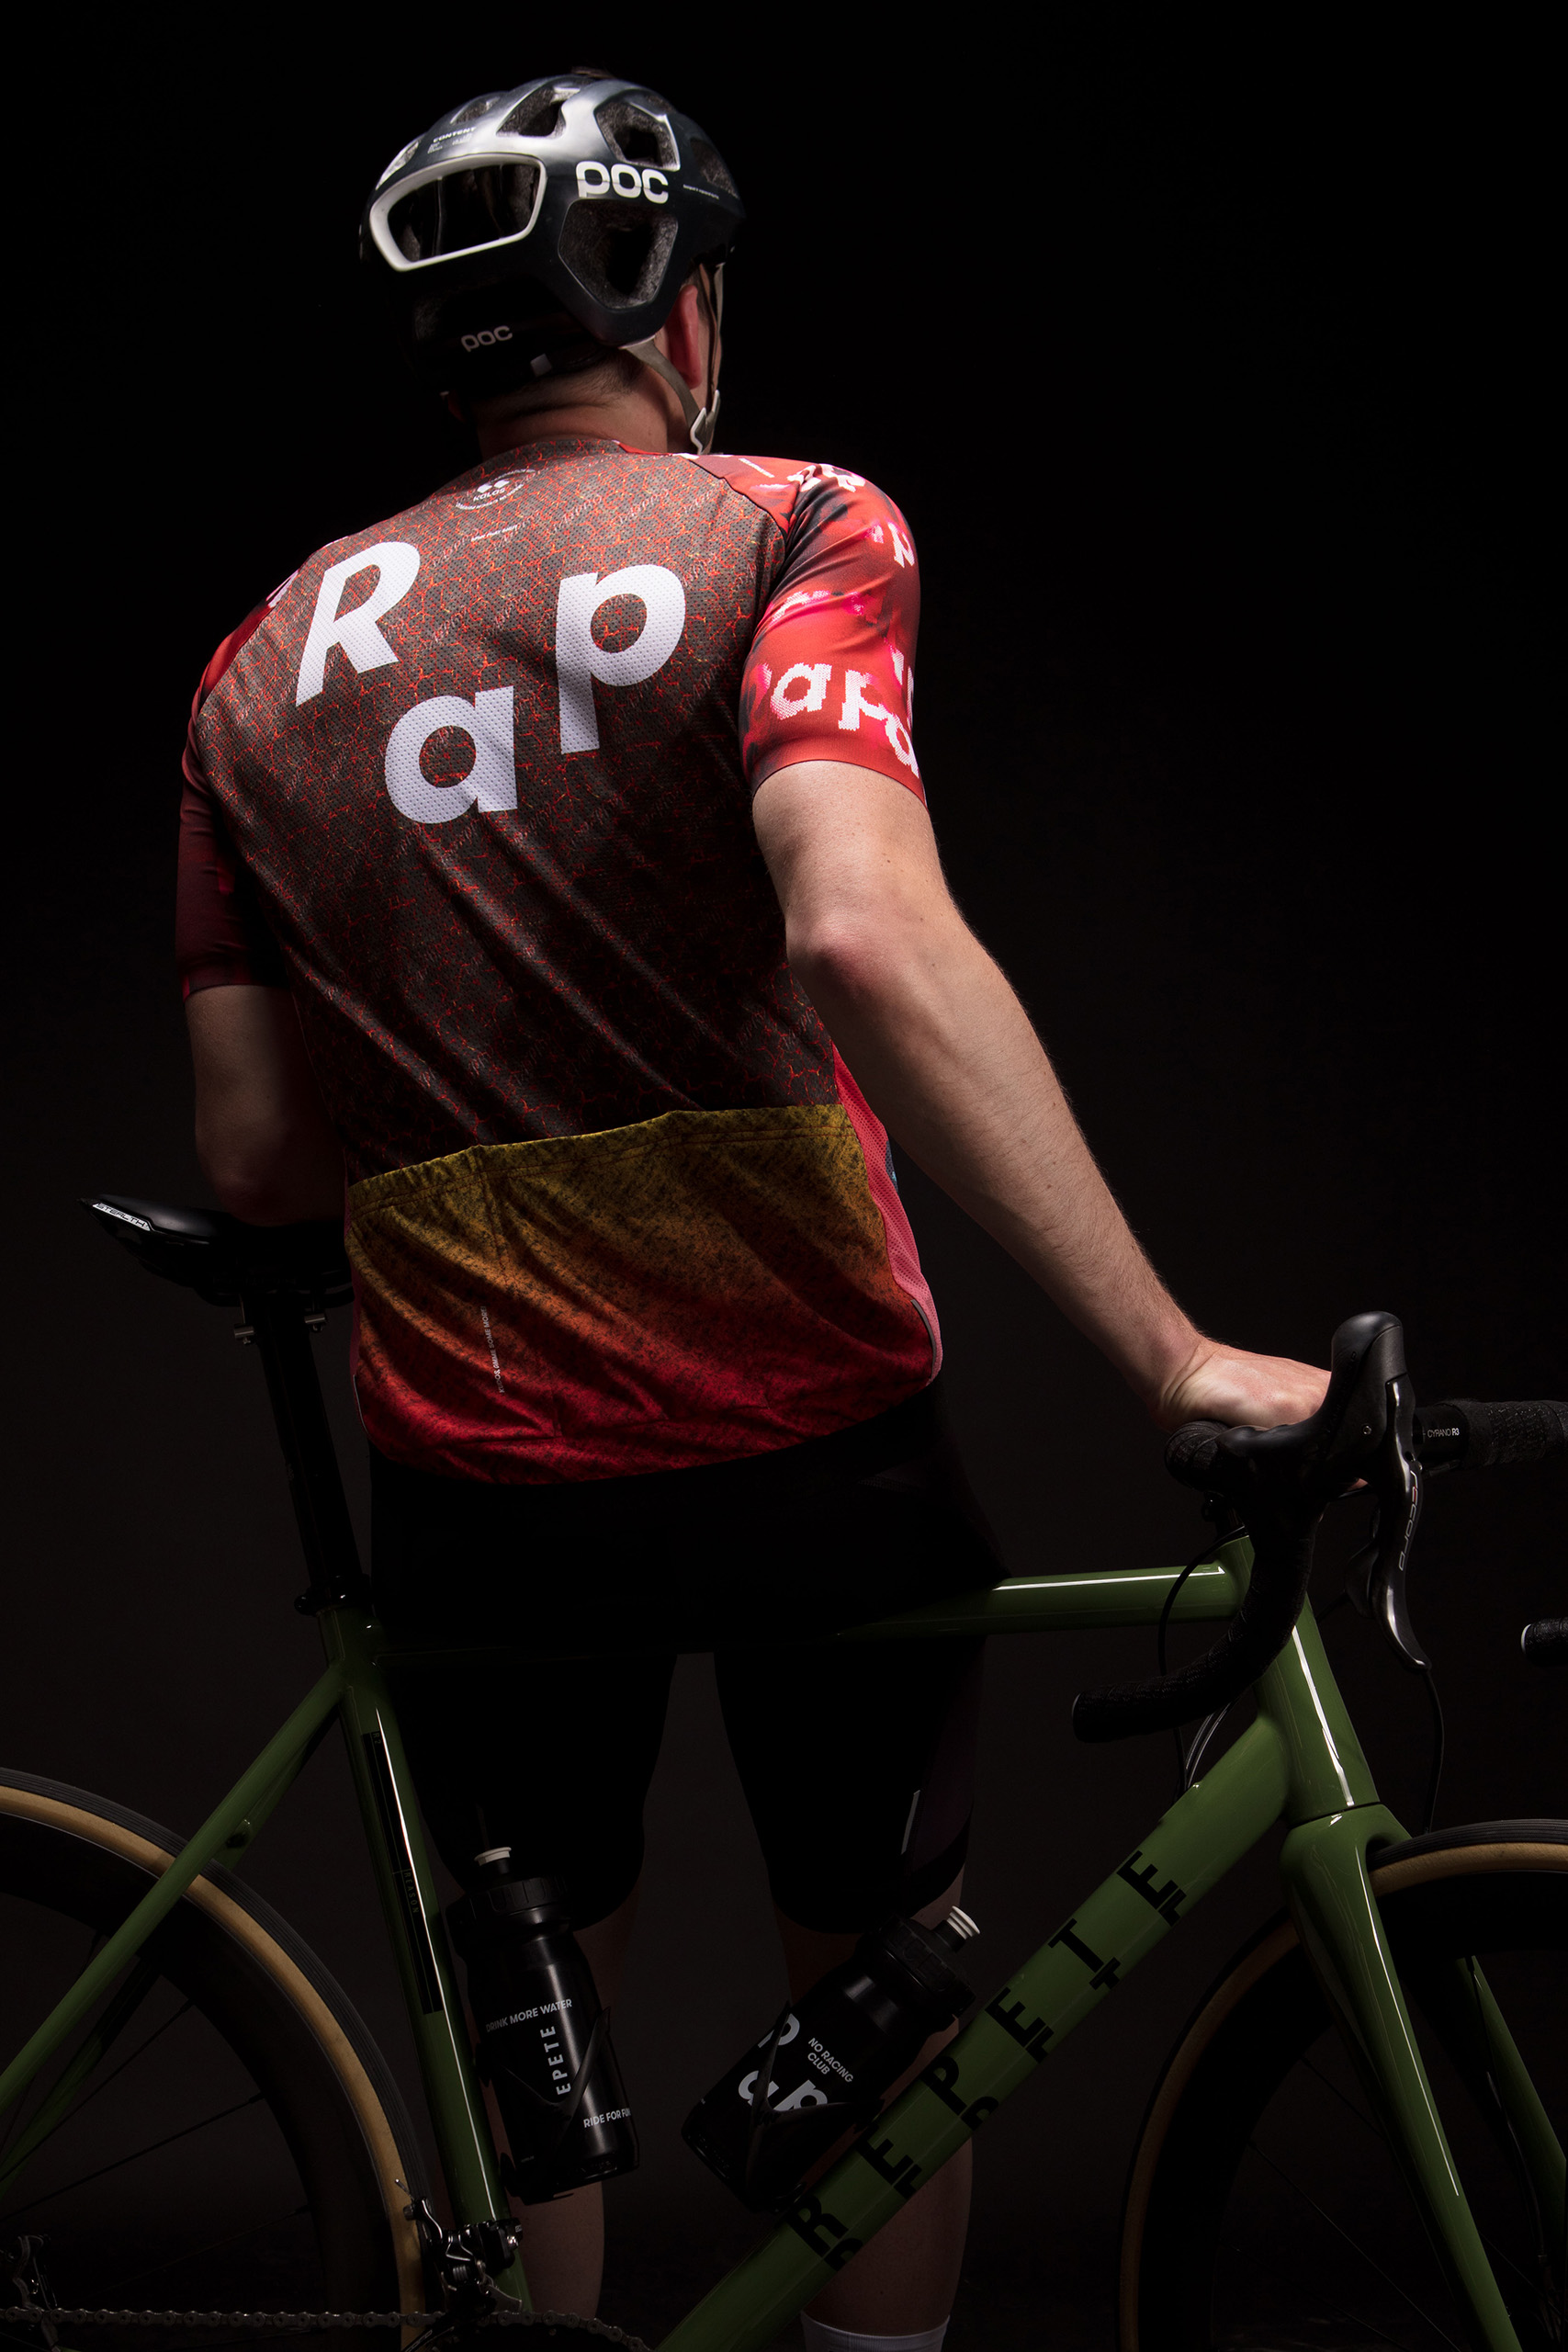 rap_no_racing_cycling_collection_repete7